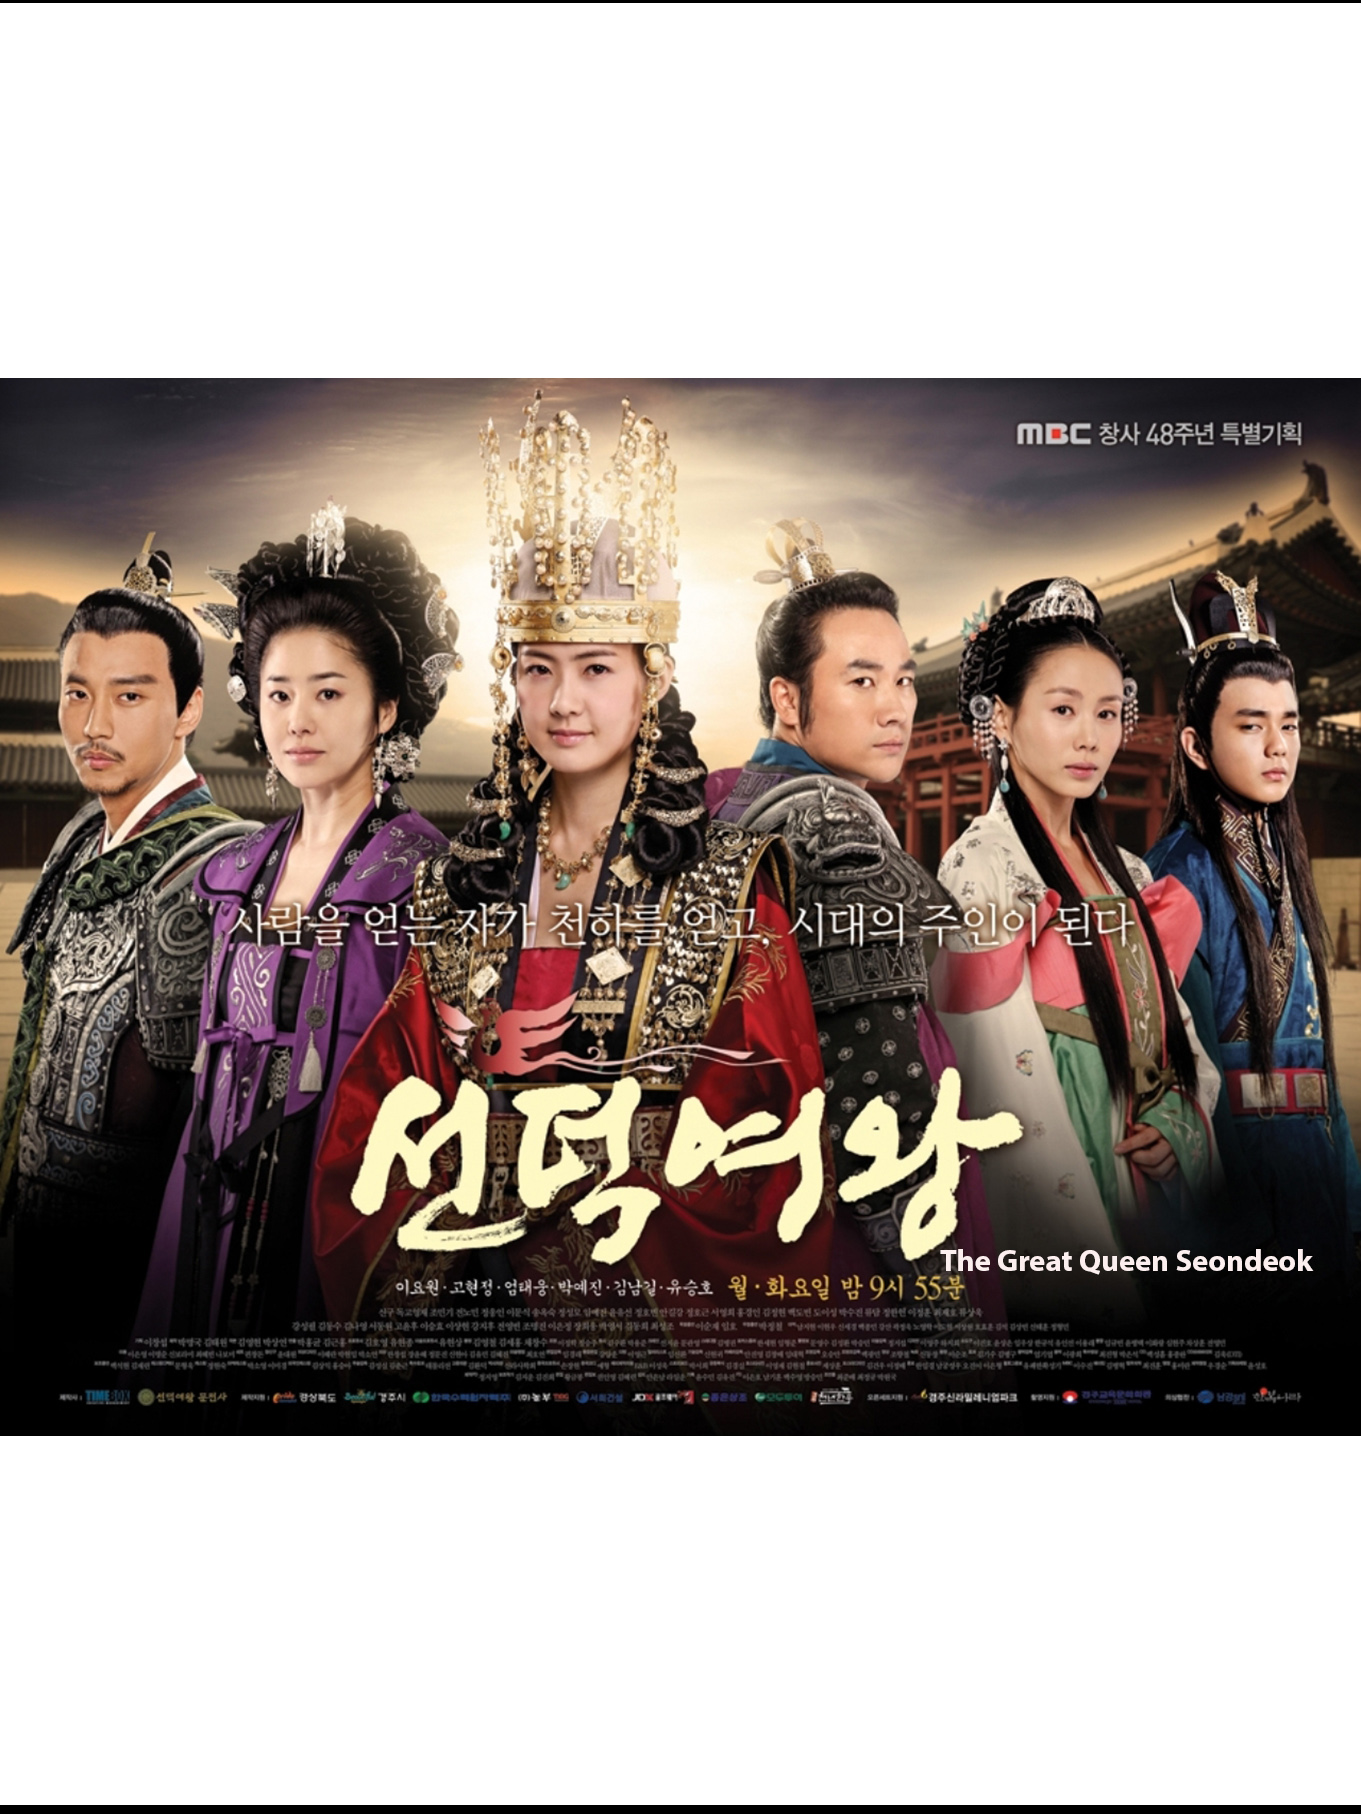 The Great Queen Seondeok [2009 Korea Series] 62 eps END (5)